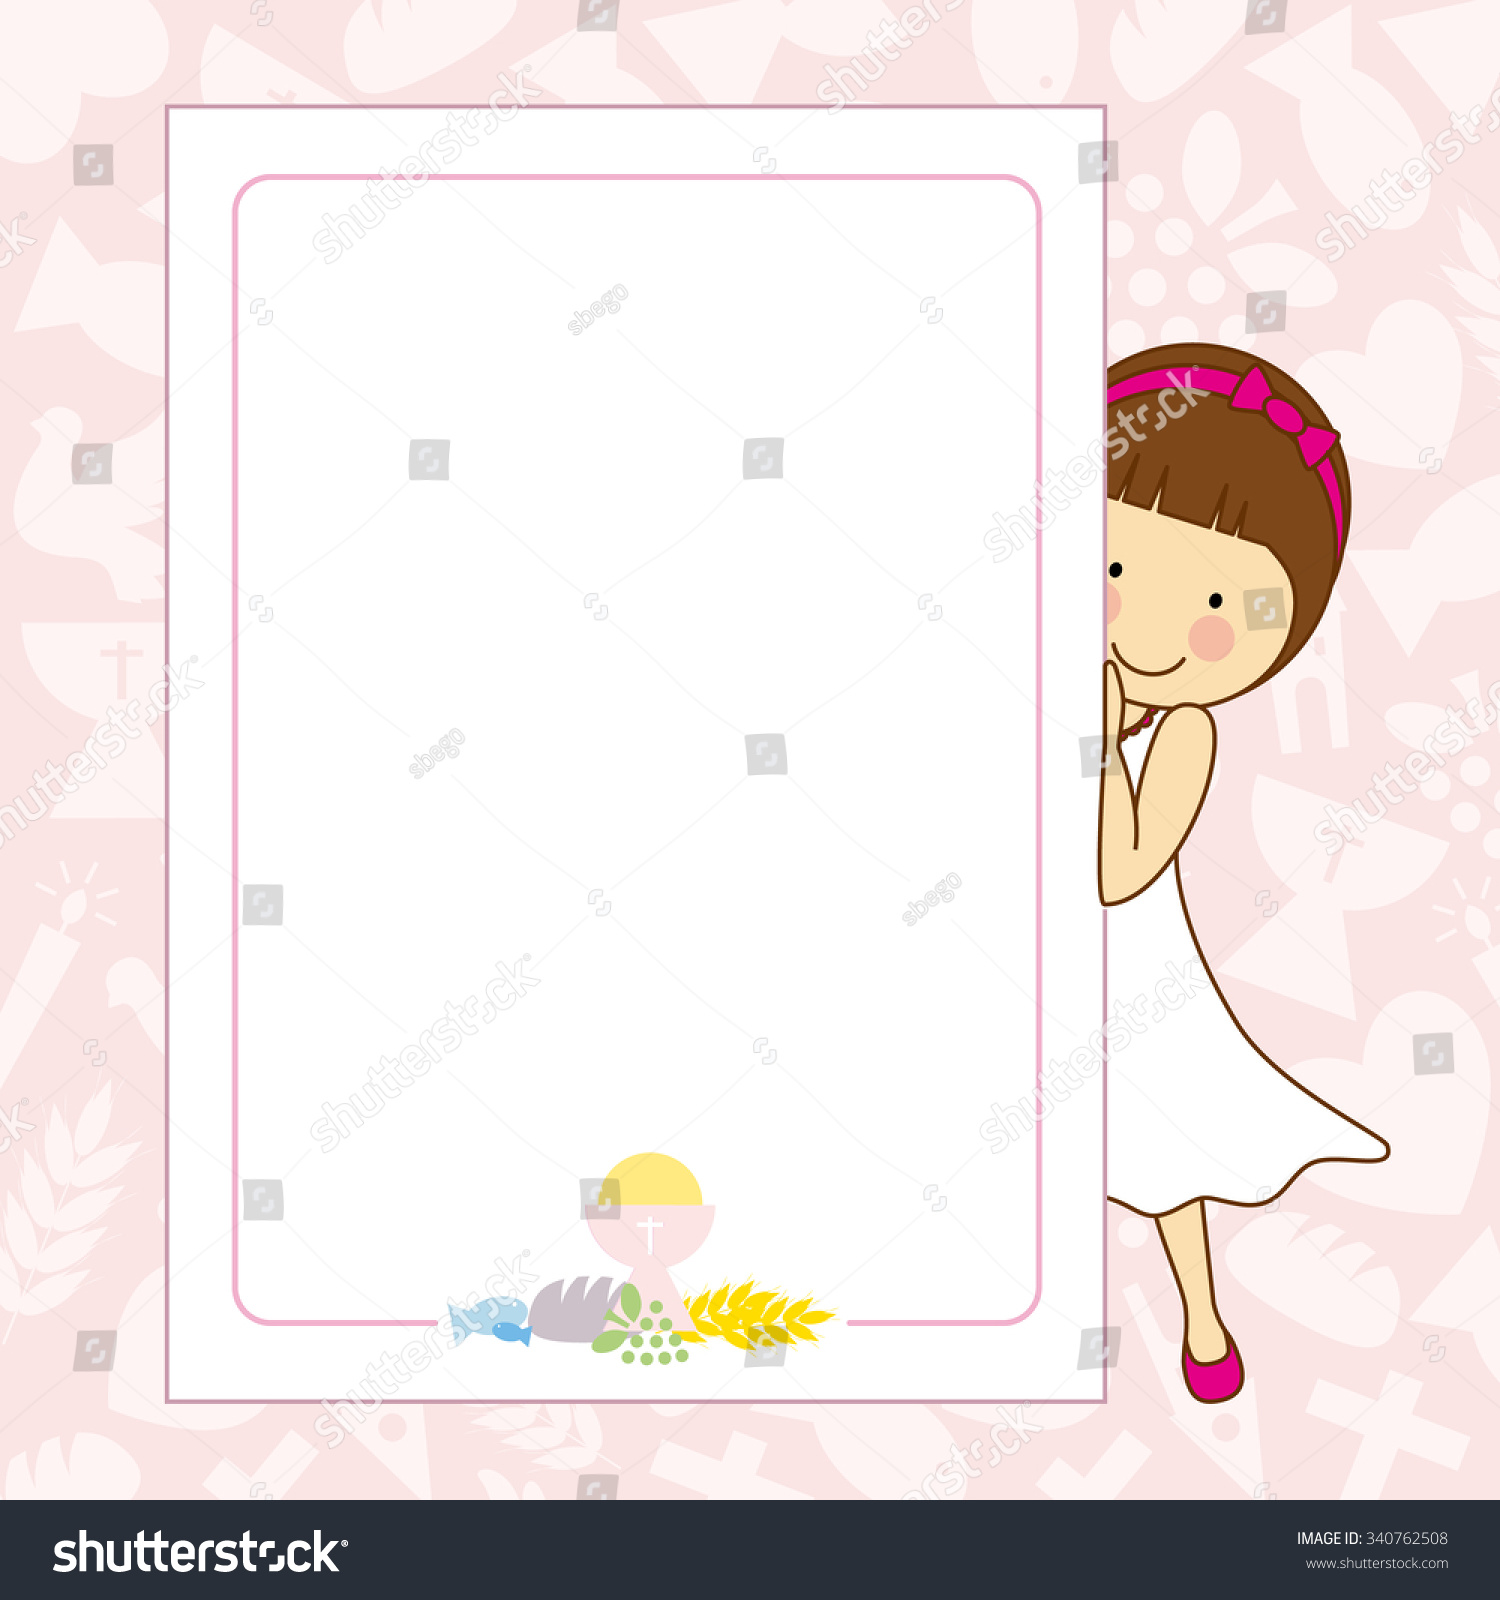 Uncategorized Girlspace my first communion girl space text stock vector 340762508 for or photo